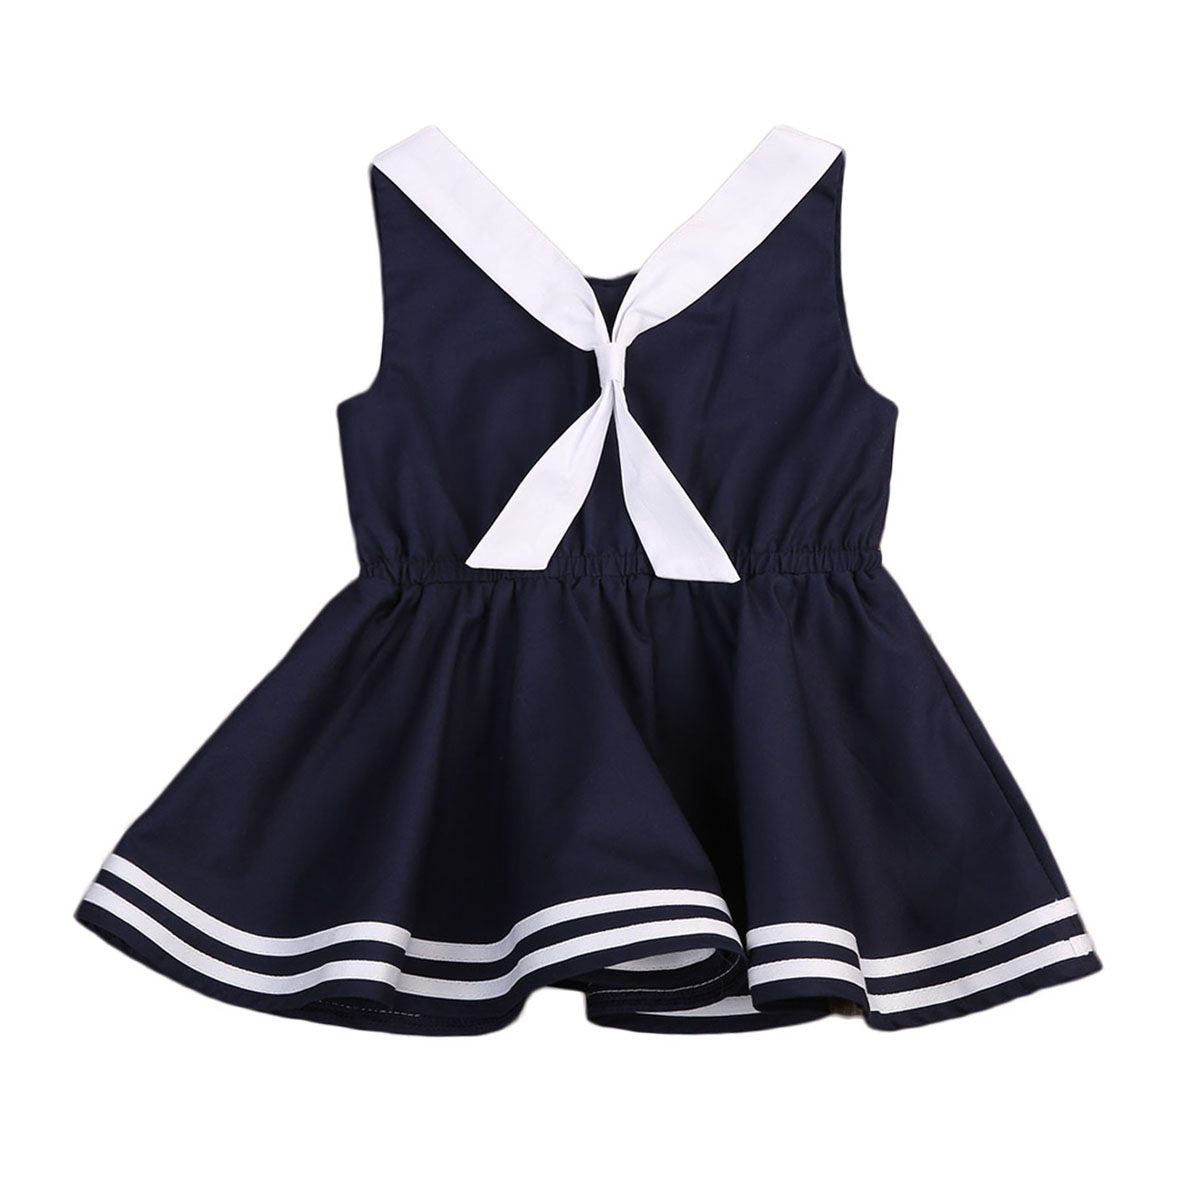 Sleeveless Casual Baby Girls Dress Tie Tutu Mini Cute Summer Party Princess Wedding Dresses Girl New